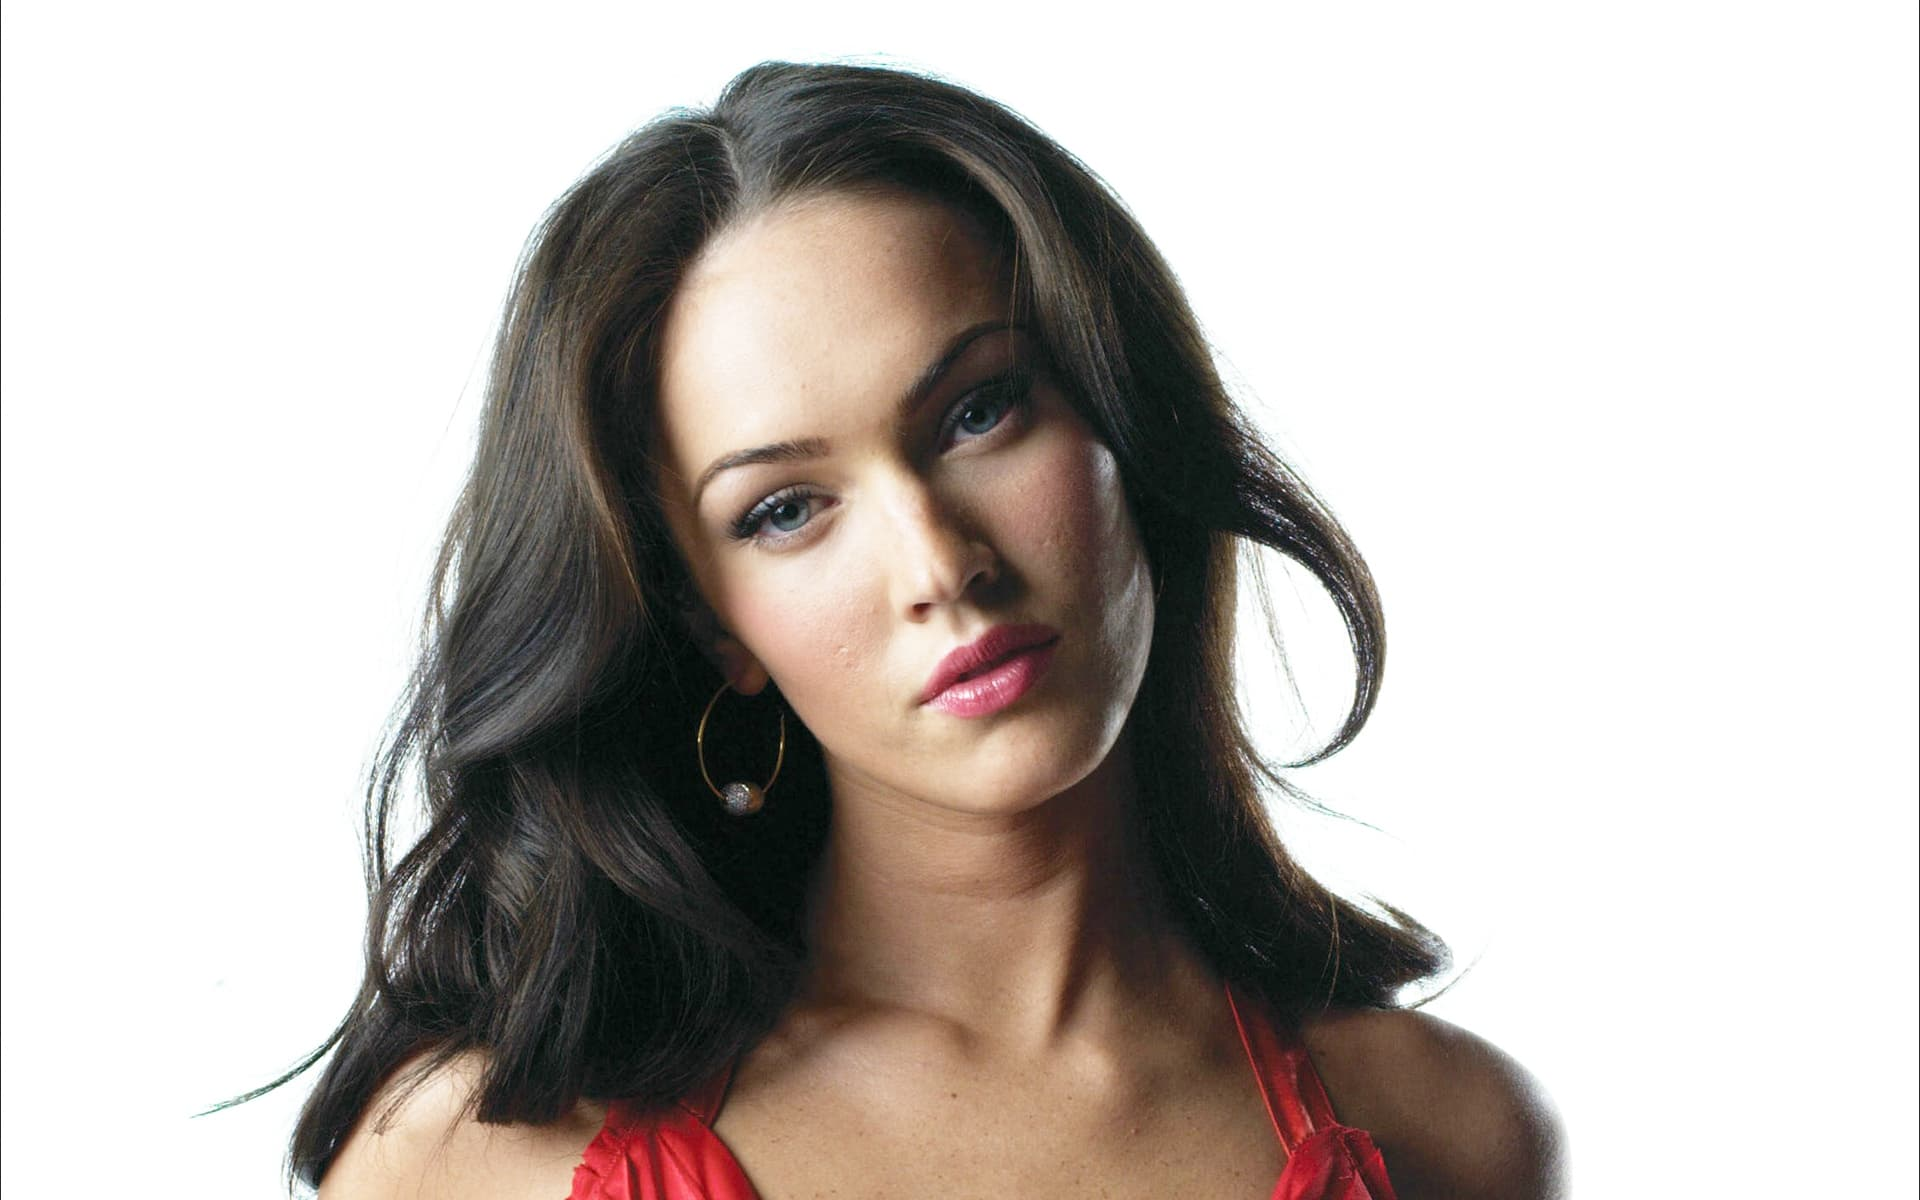 40 Megan Fox wallpapers High Quality Download 1920x1200